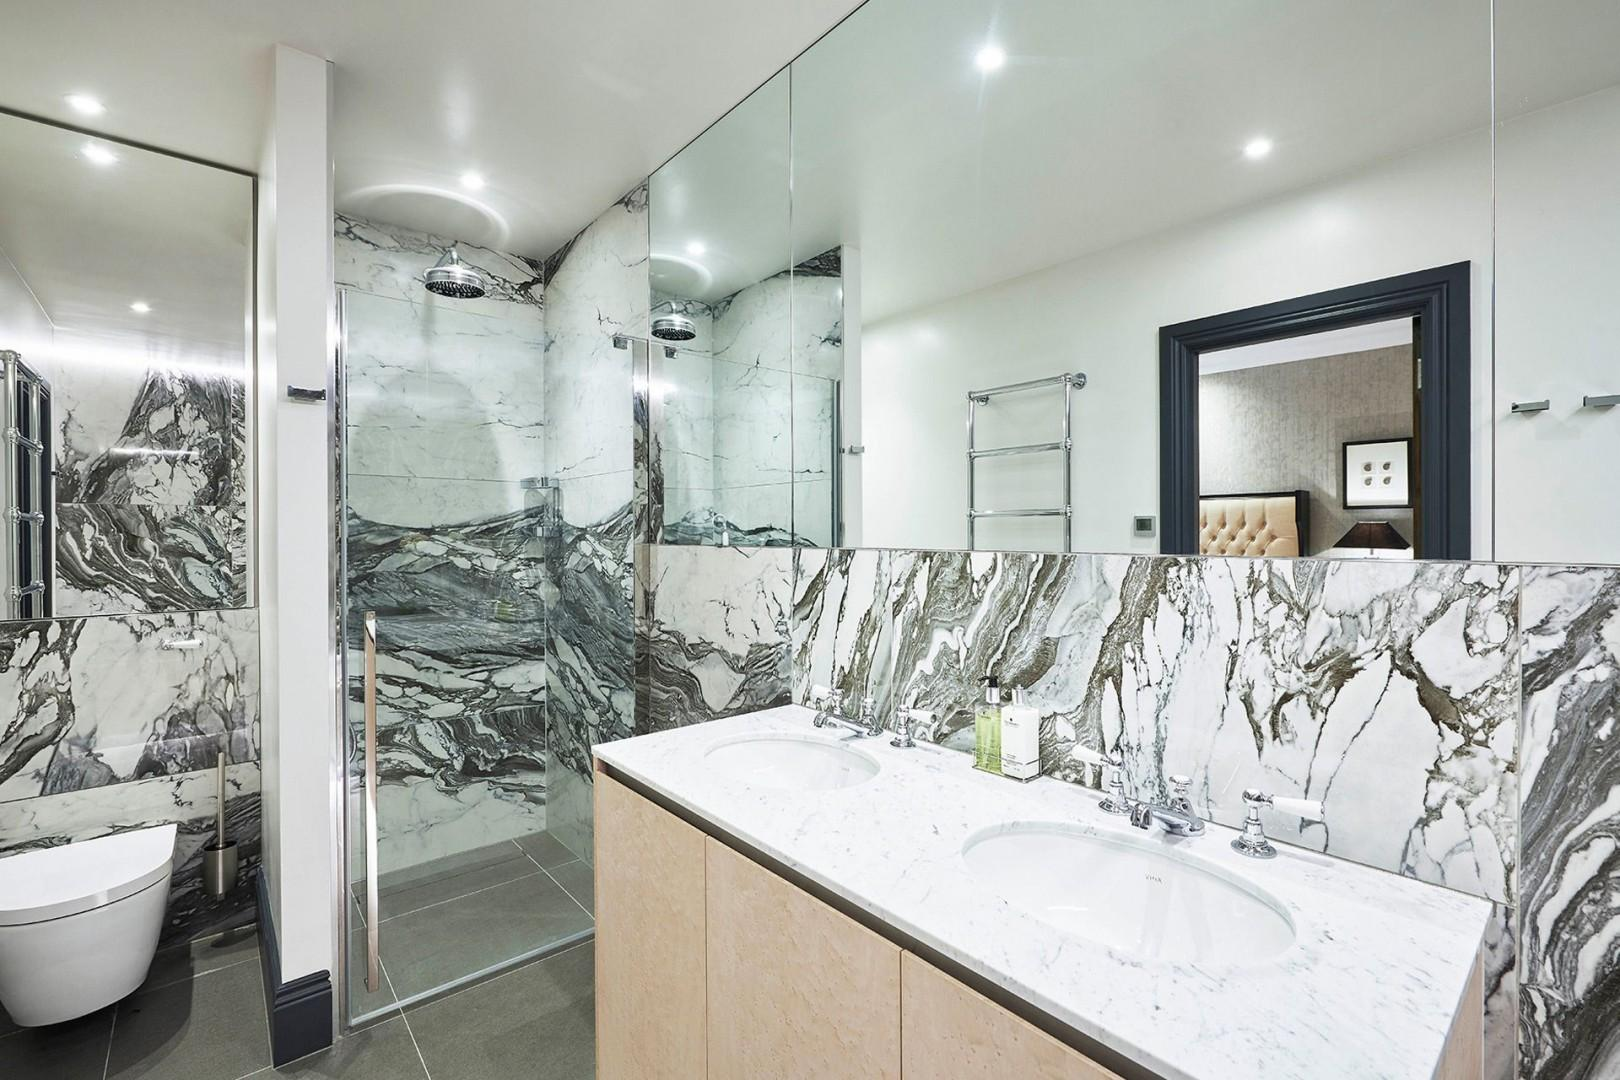 Shower and double-sink vanity